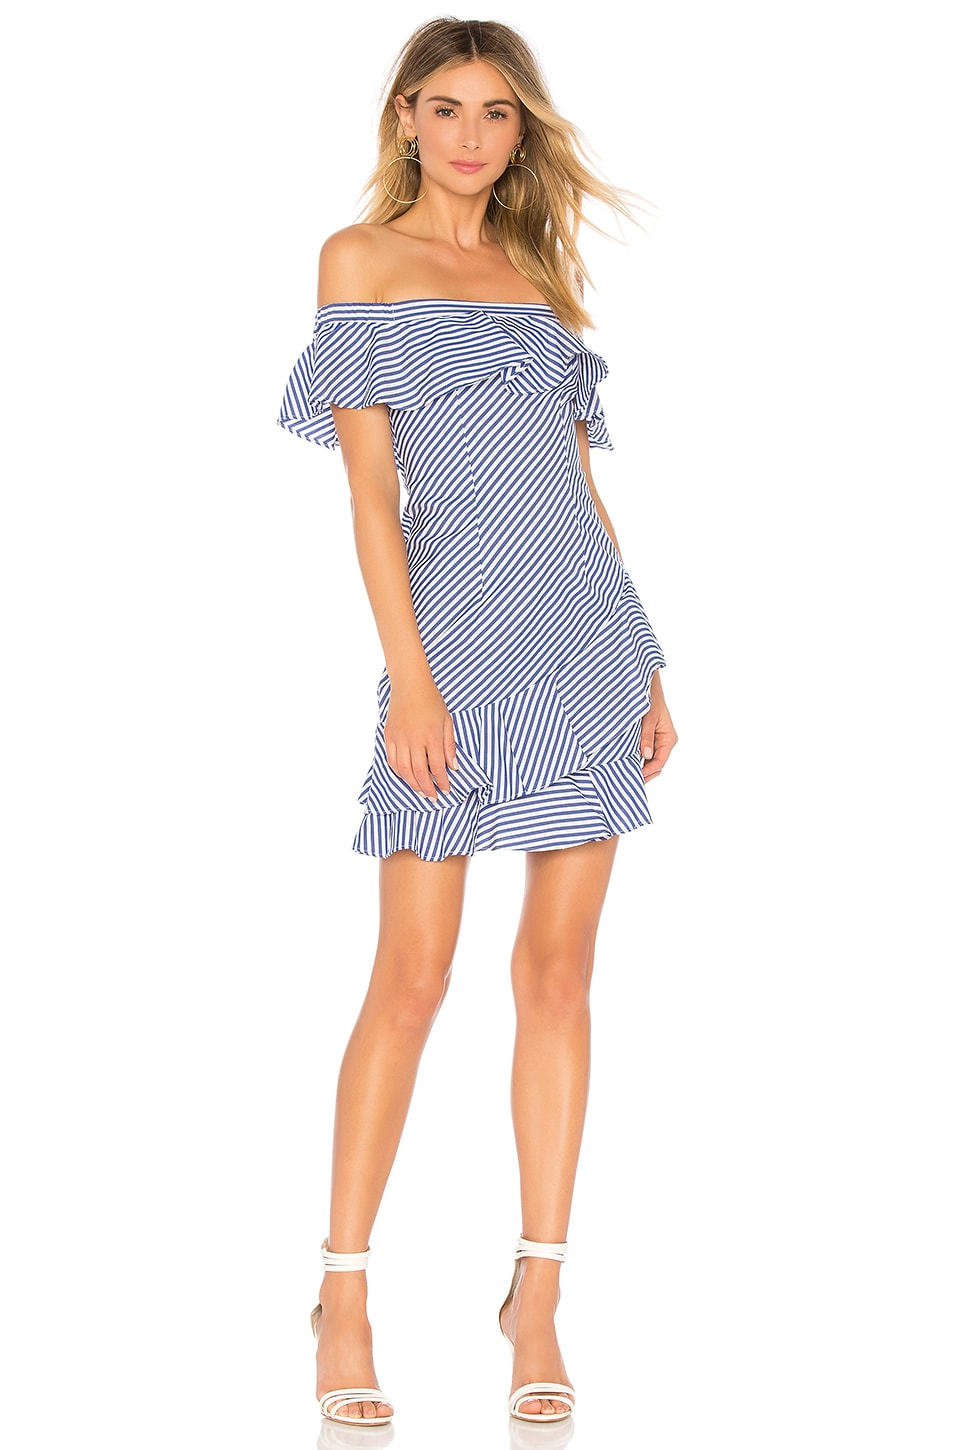 About Us Rosa Striped Off Shoulder Dress in Blue & White Stripes